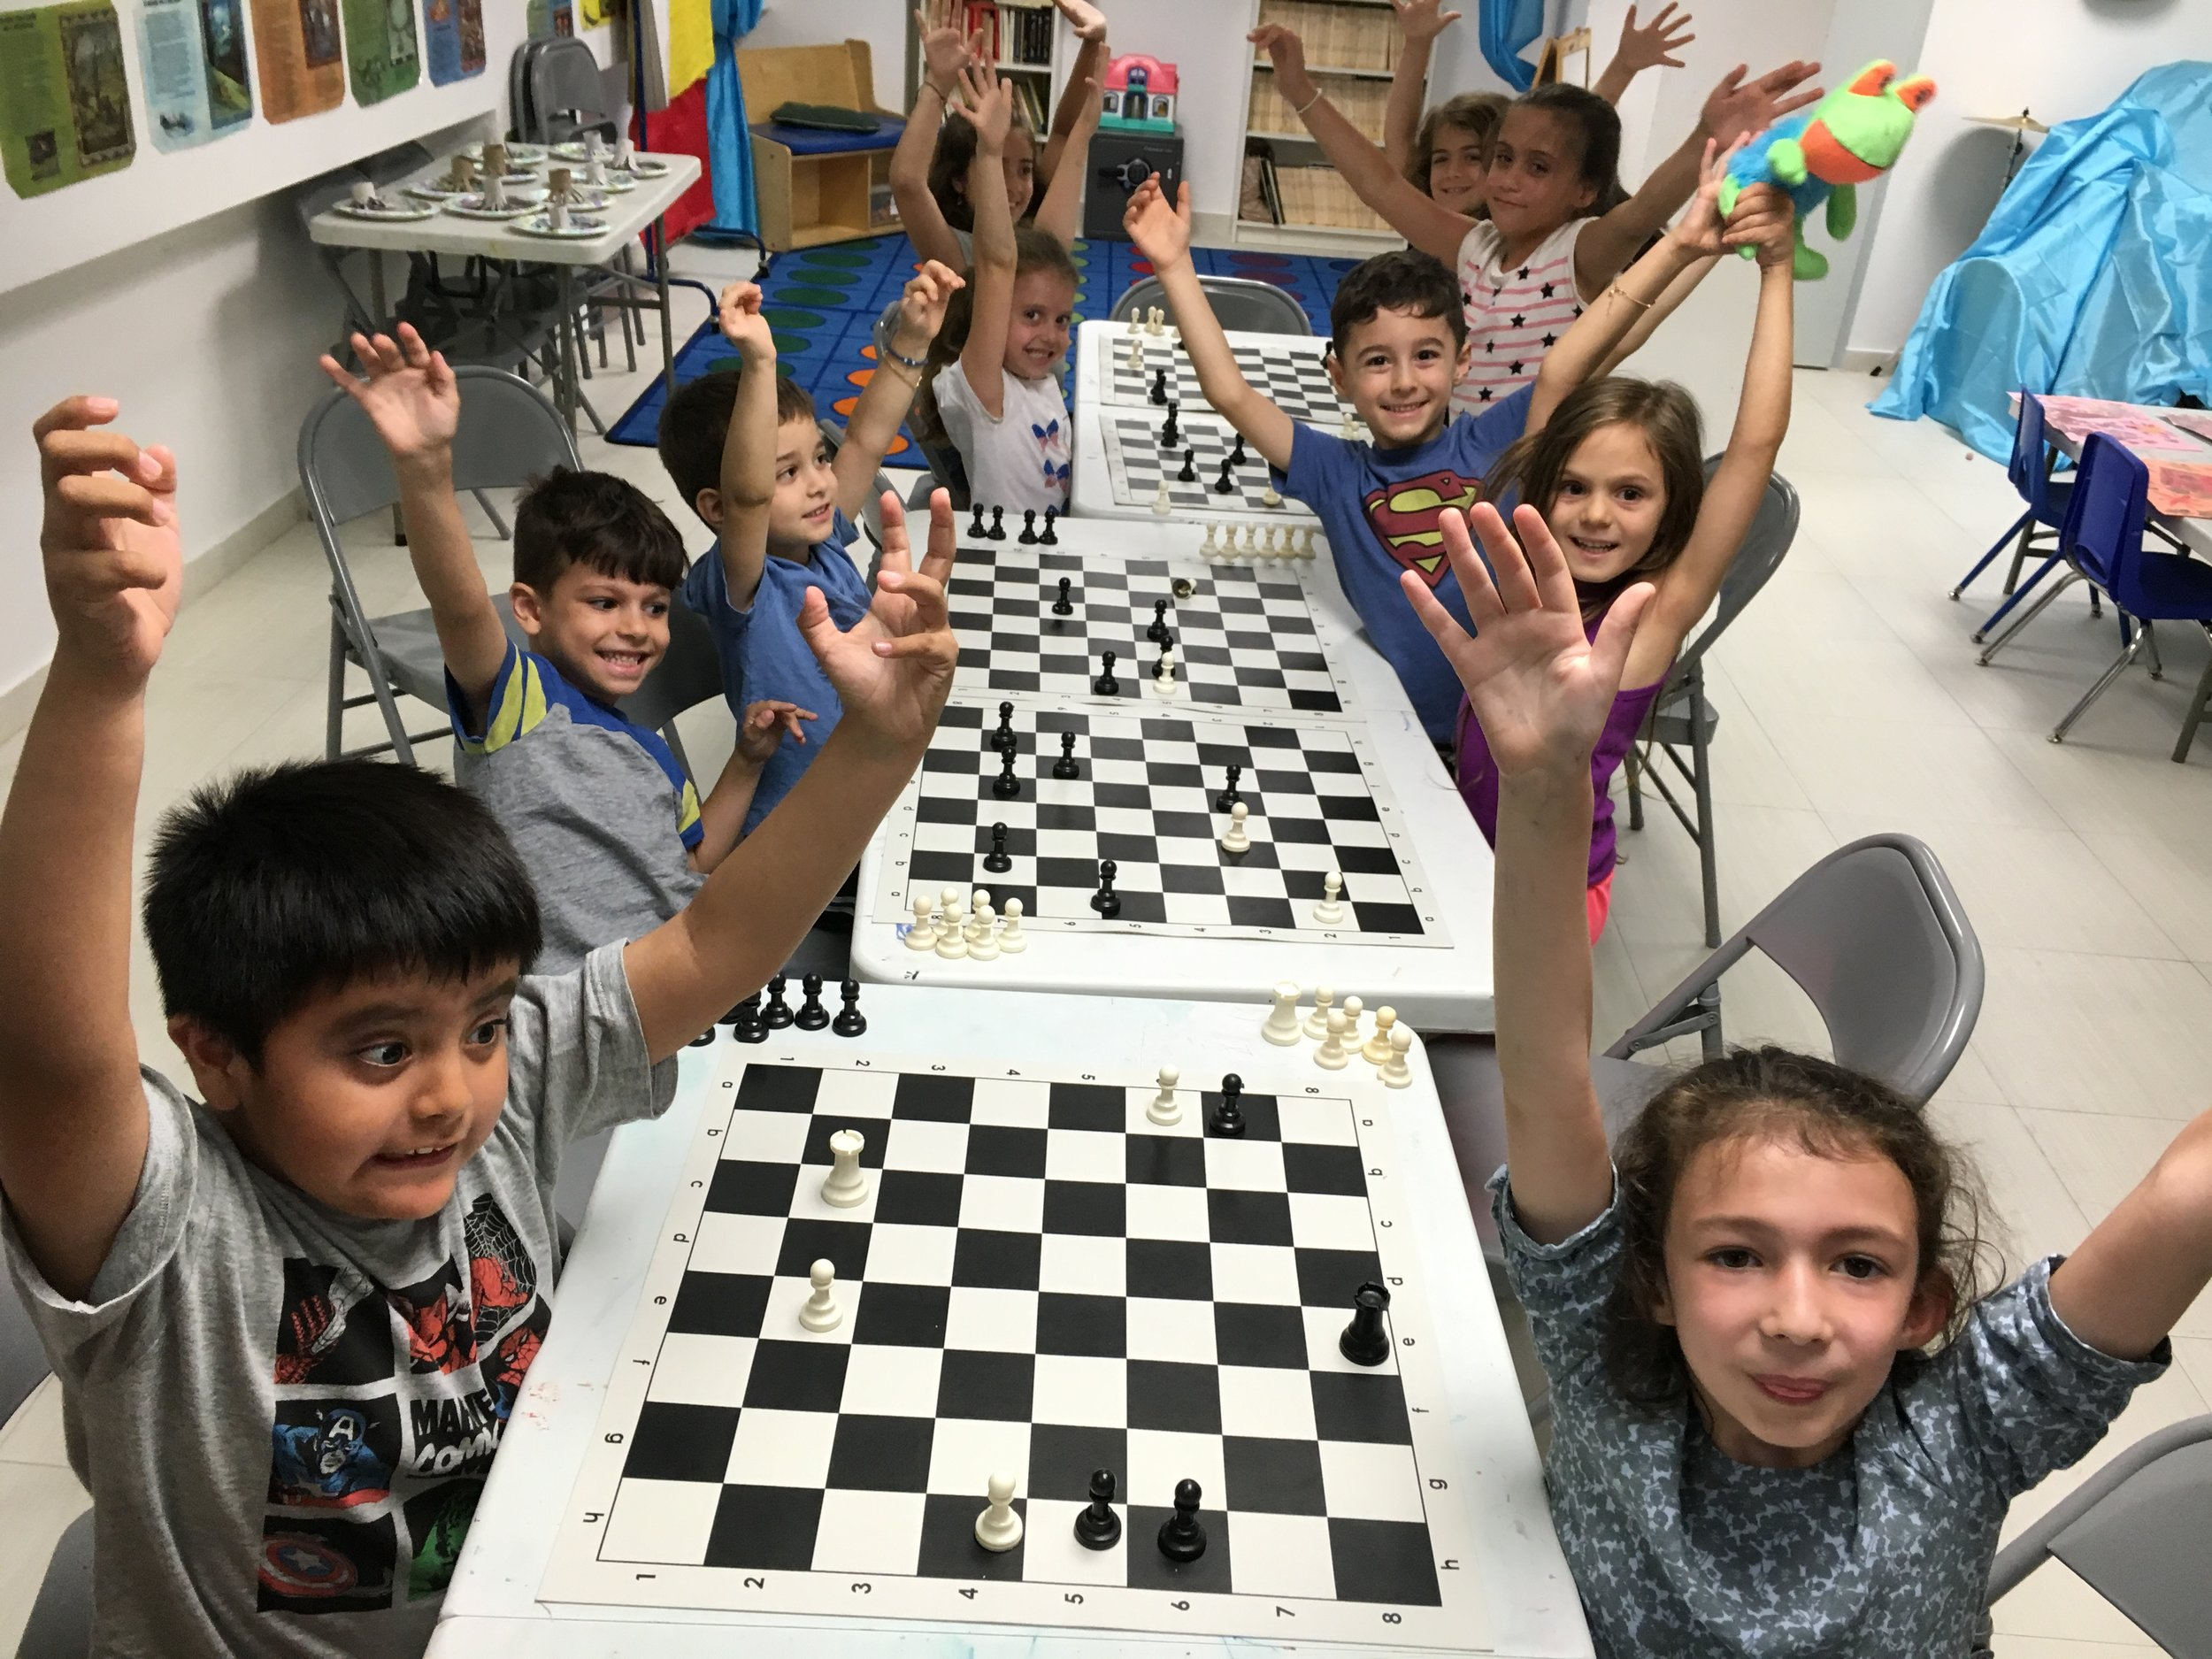 Chess Club - Enjoy our TeamAll ages and levels are welcome.Classes 2017-2018Fridays: 6-7 pm,Saturdays: 1-2 pm